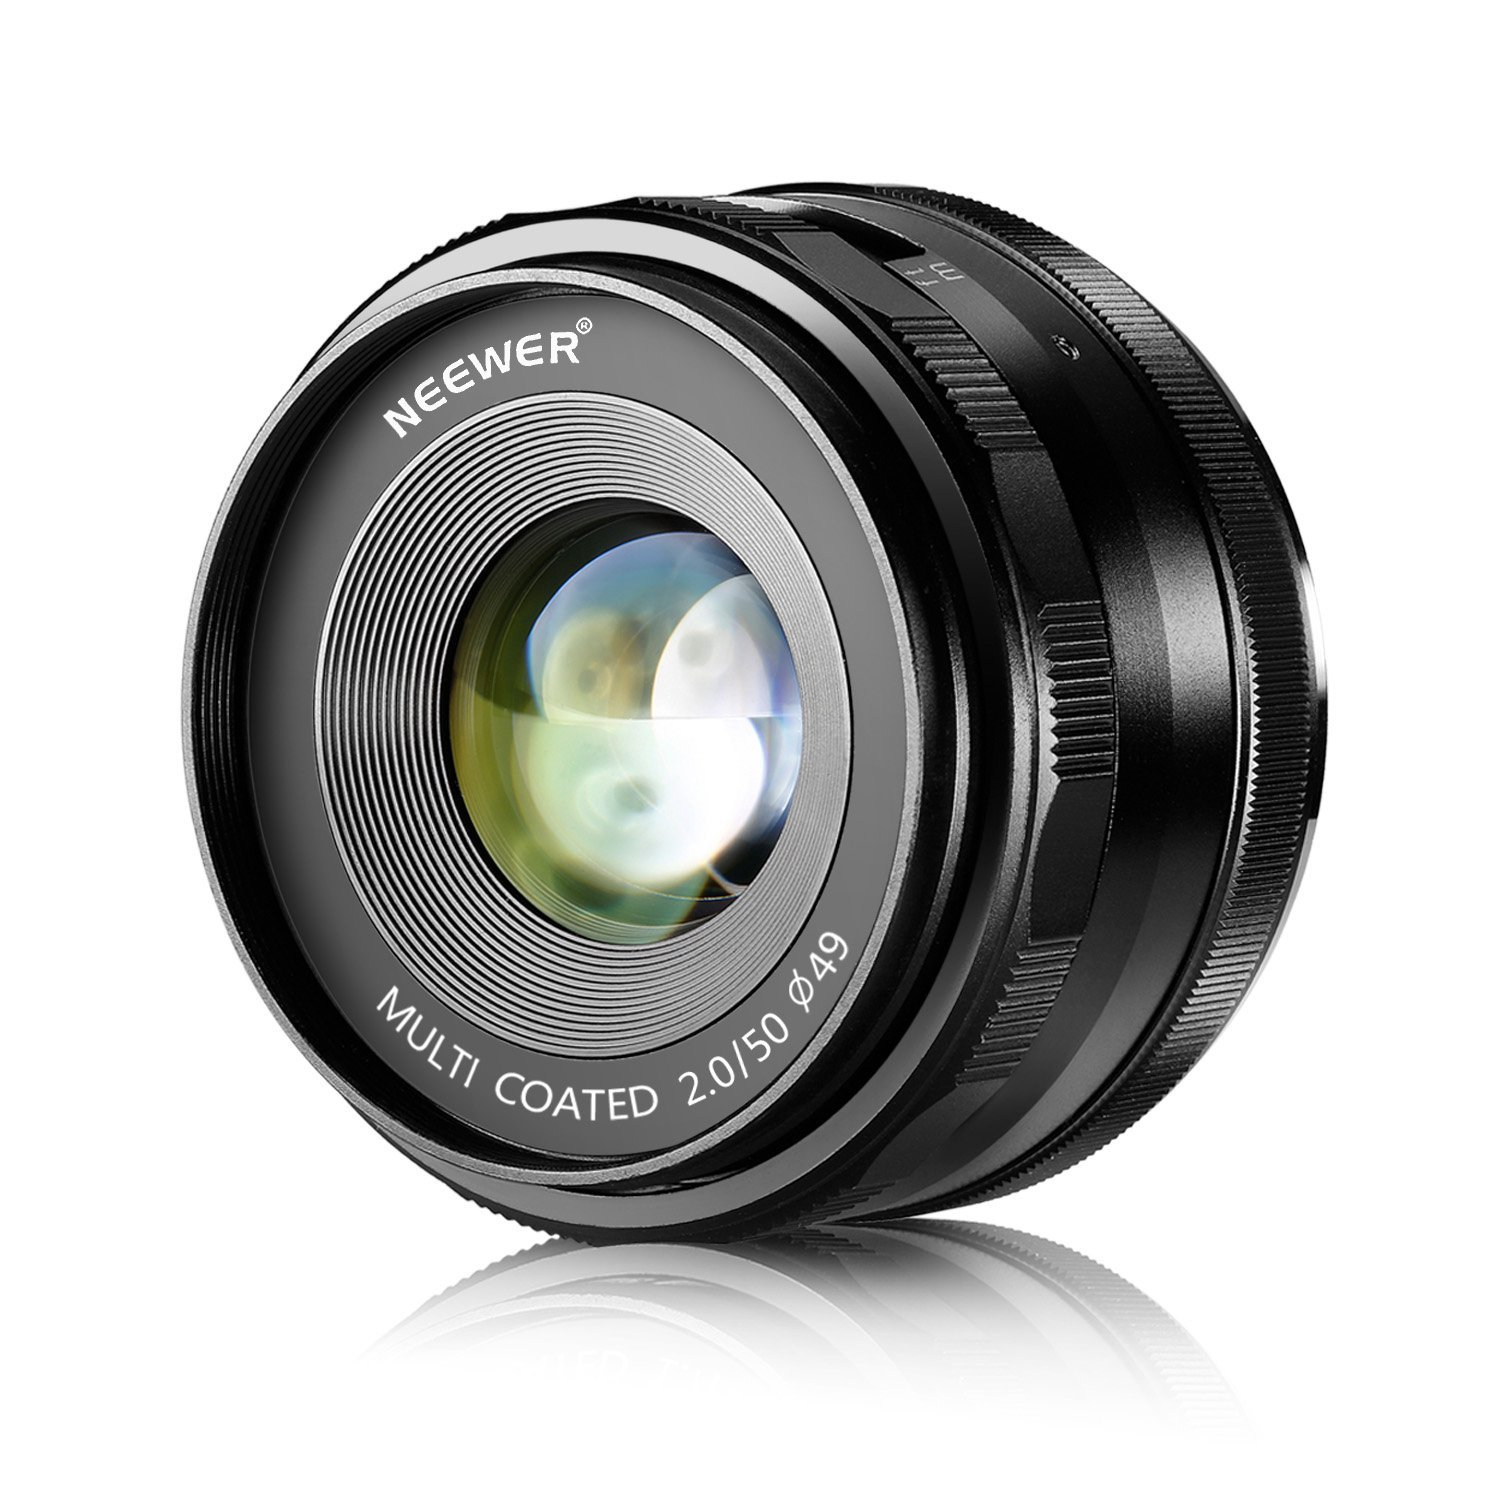 Neewer® 50mm f/2.0 Manual Focus Prime Fixed Lens for OLMPUS and PANASONIC APS-C Digital Cameras, Such as OLYMPUS: E-M1/M5/M10, E-P5E-PL3/PL5/PL6/PL7, PANASONIC: GM1/2, GX1/2/7/8, GF5/6/7